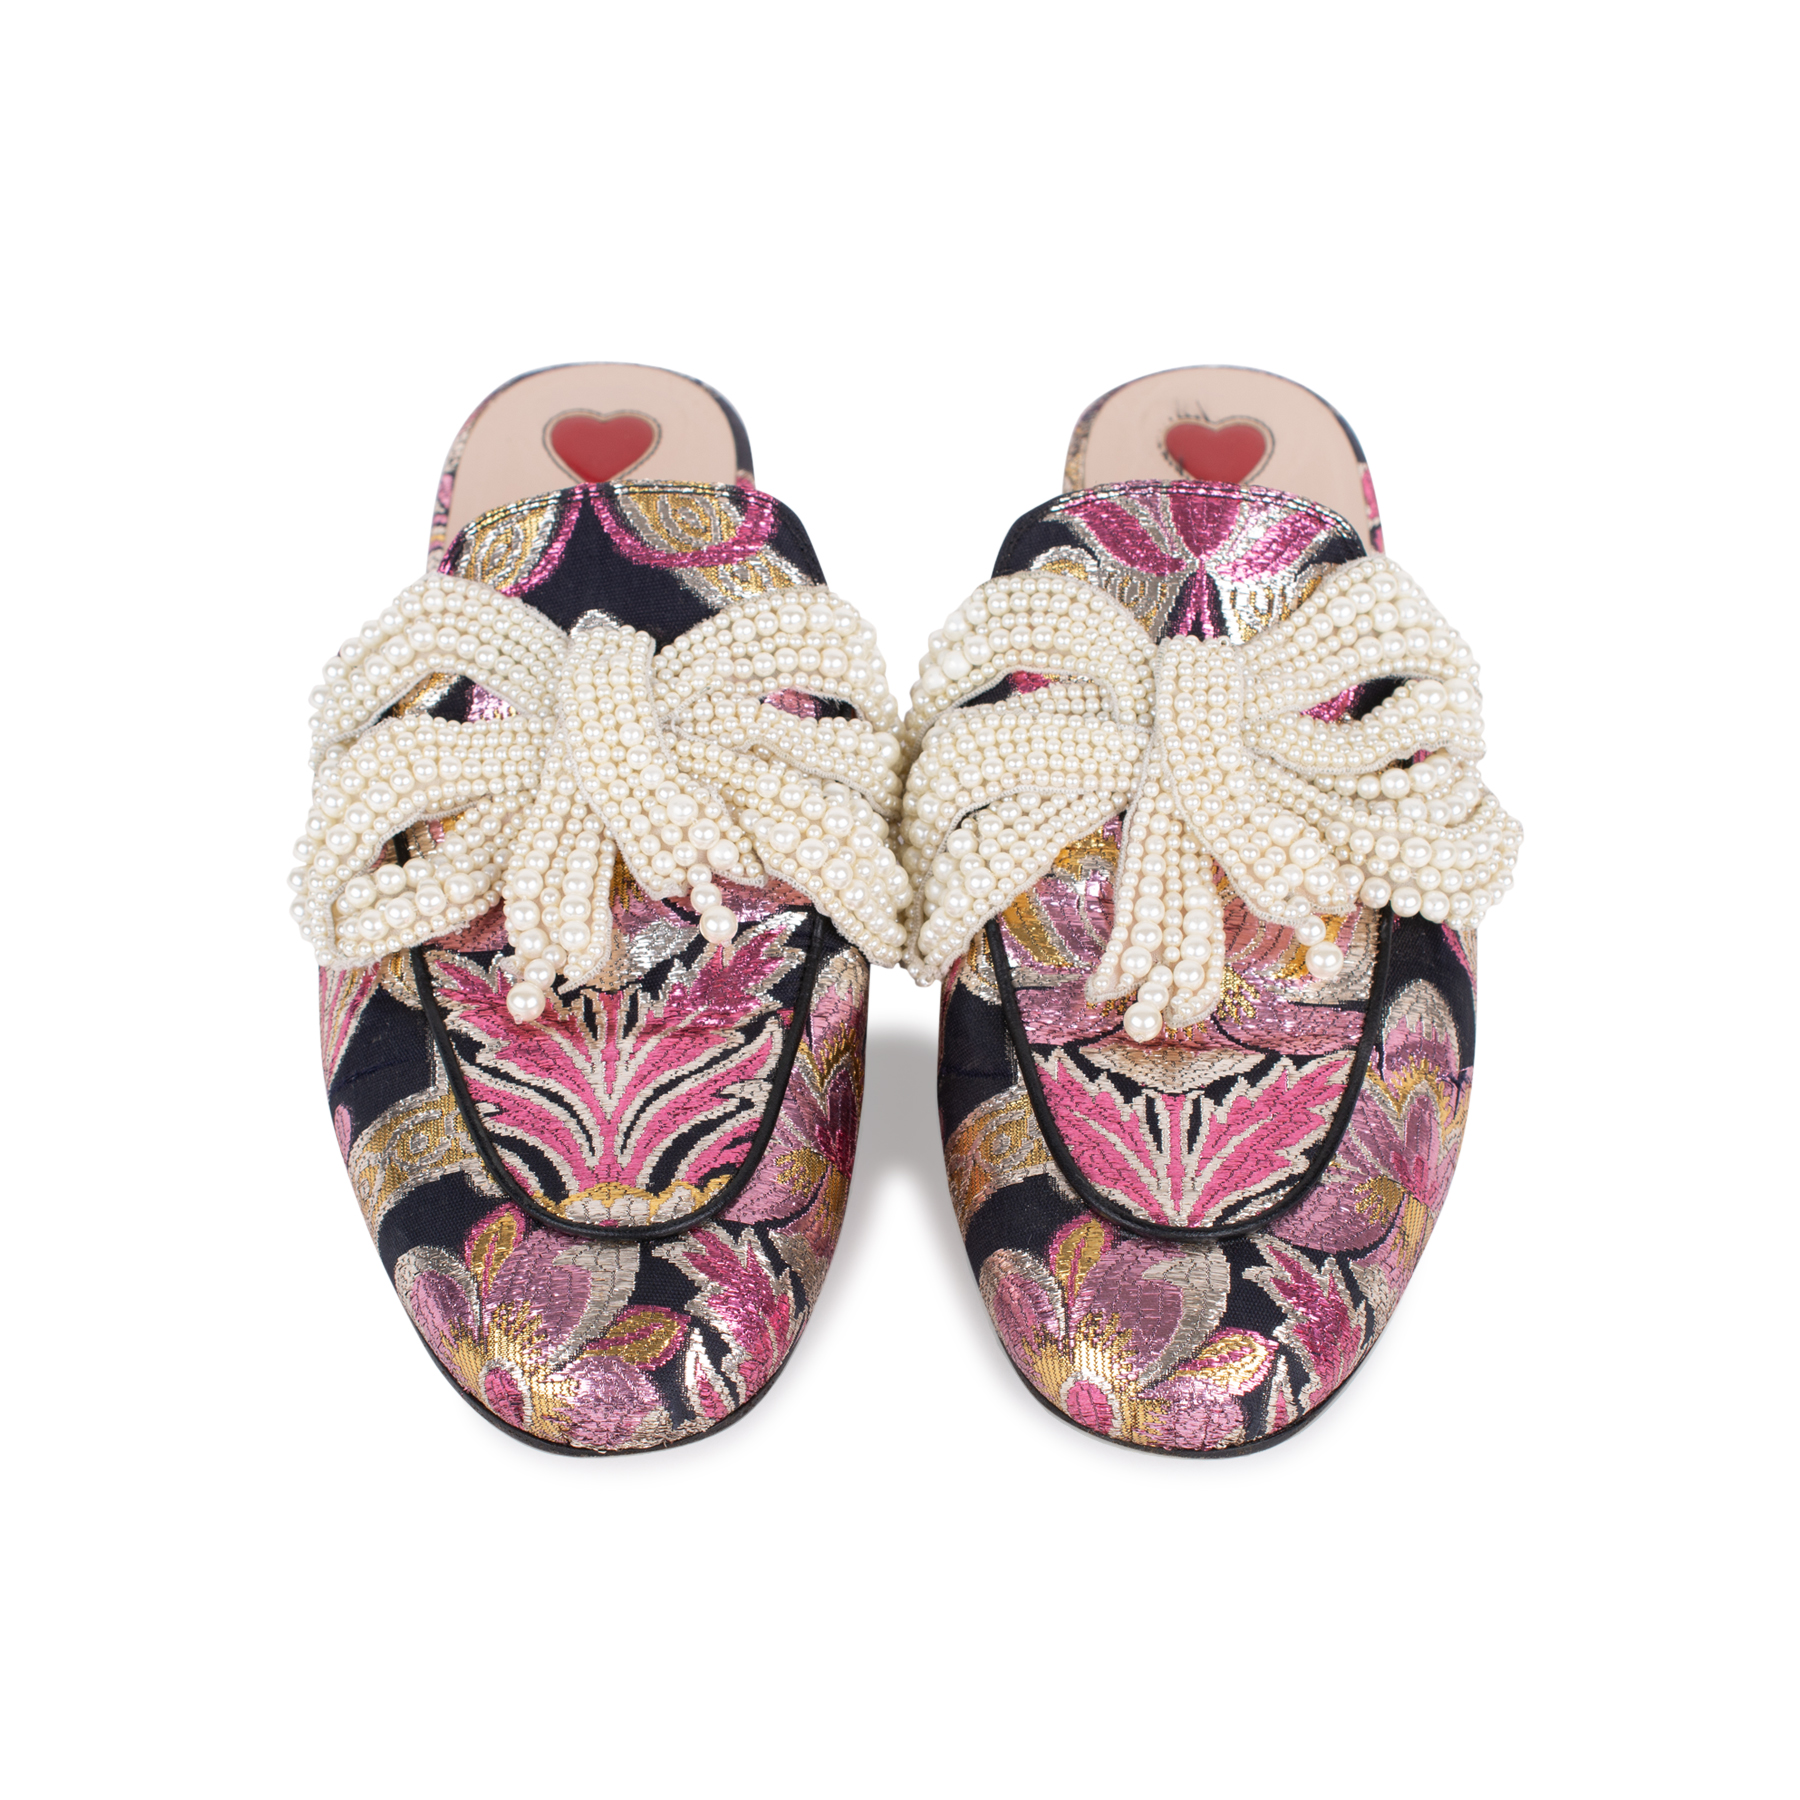 5f8ff0ee066 Authentic Second Hand Gucci Princetown Pearl Embellished Brocade Slippers  (PSS-197-00085)